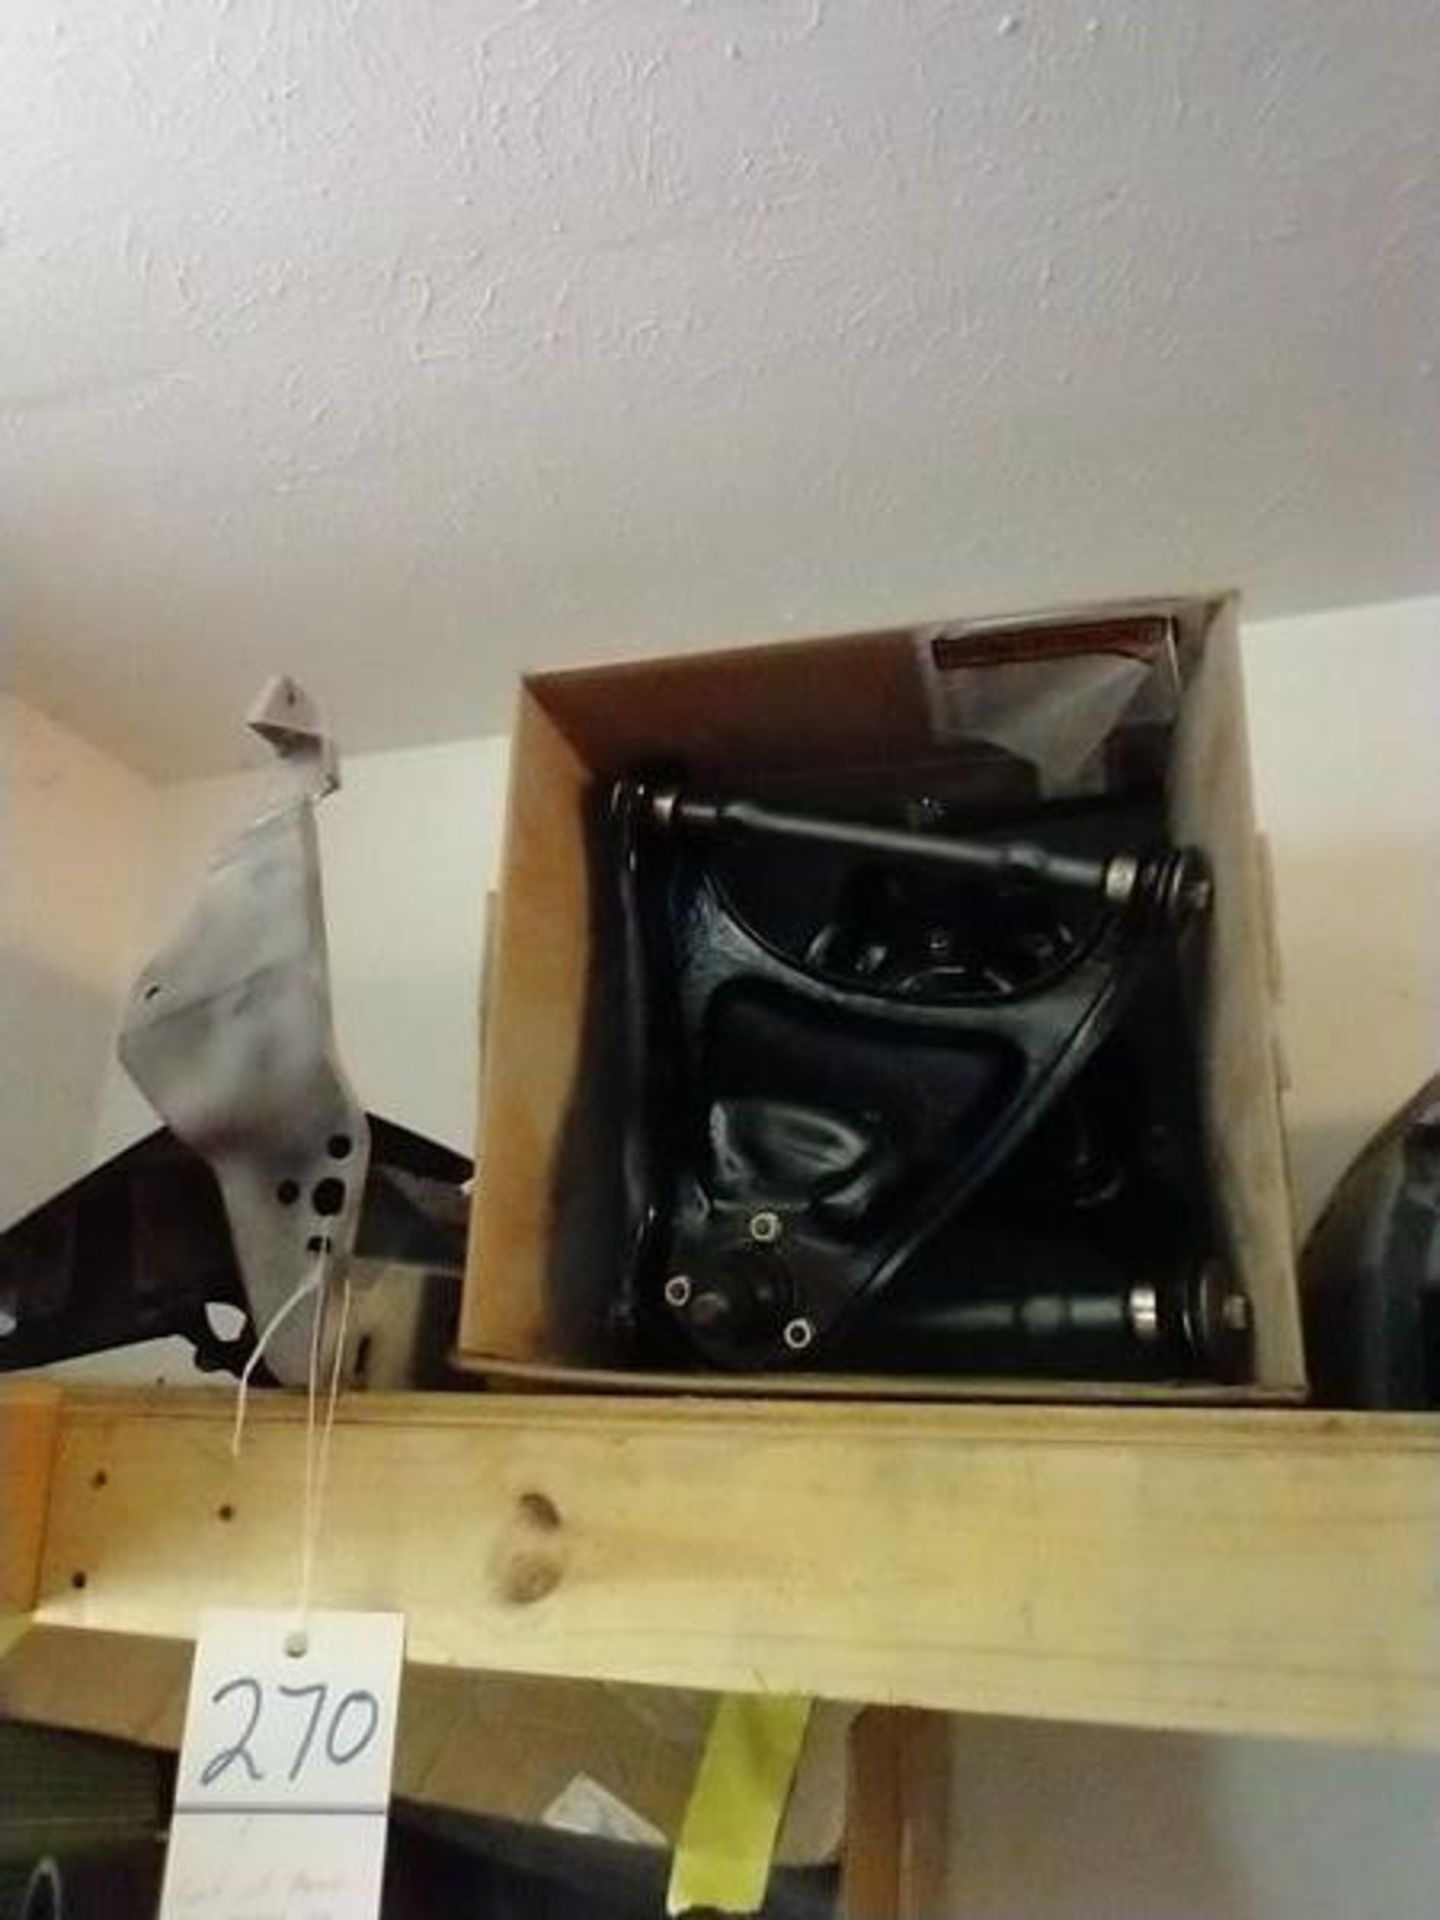 LOT OF ASSORTED CAR PARTS ON 2 SHELVES AND FLOOR - Image 2 of 23